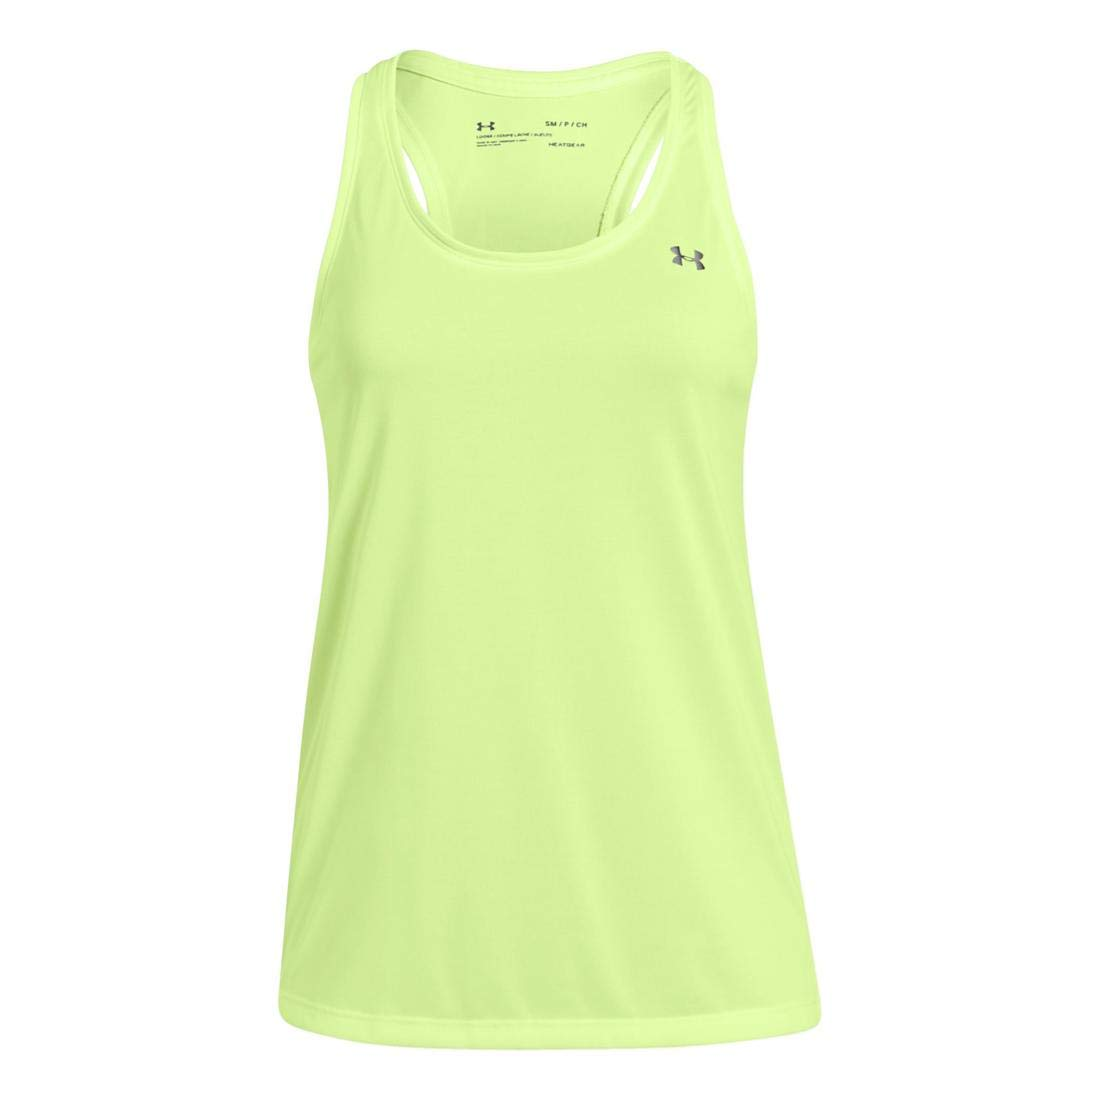 abc49479f6eb61 Best Rated in Women s Sports Tank Tops   Helpful Customer Reviews ...